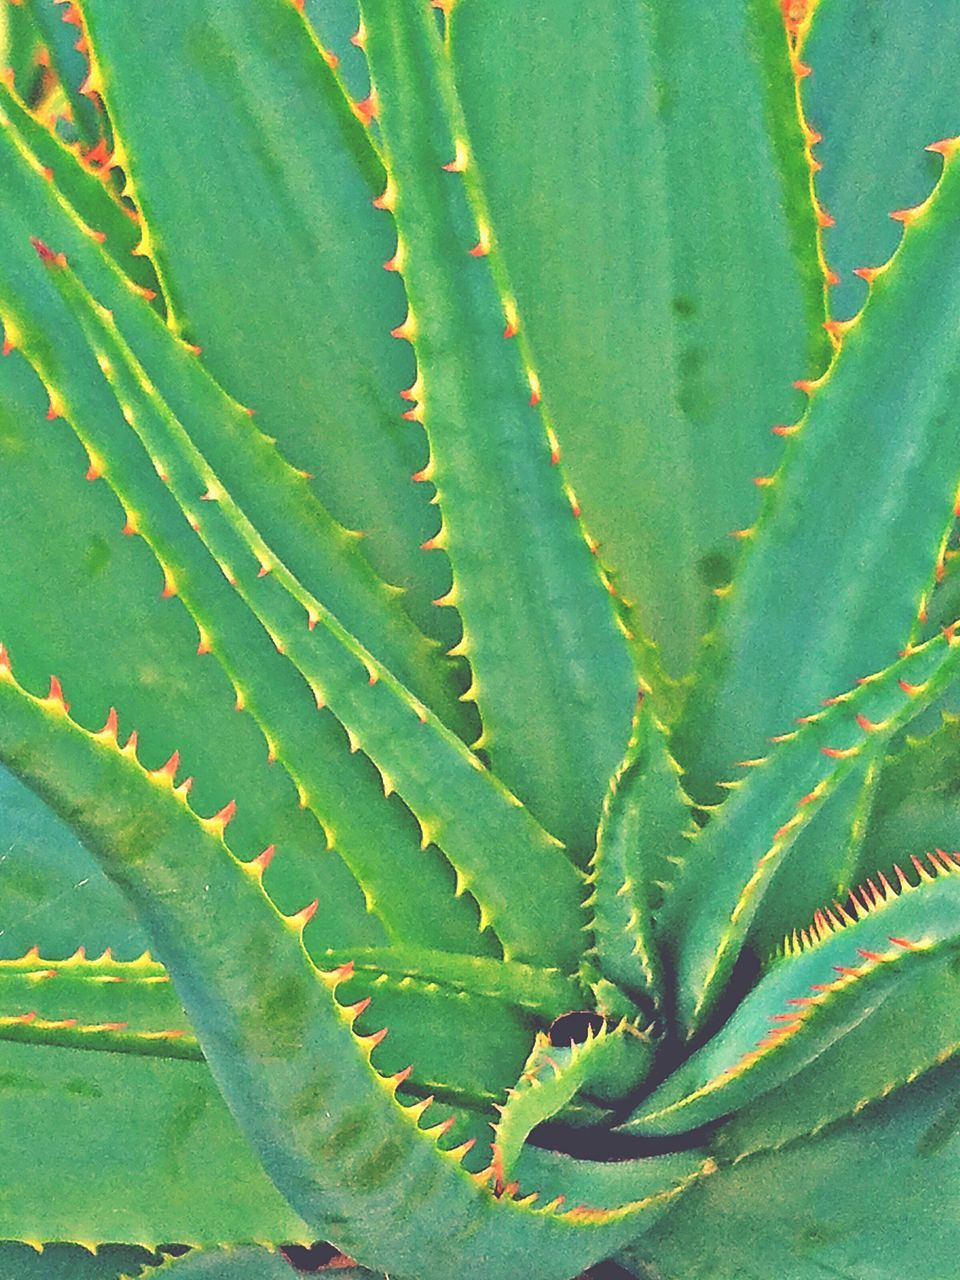 leaf, green color, growth, plant, nature, aloe, aloe vera plant, no people, close-up, alternative medicine, herbal medicine, beauty in nature, day, outdoors, freshness